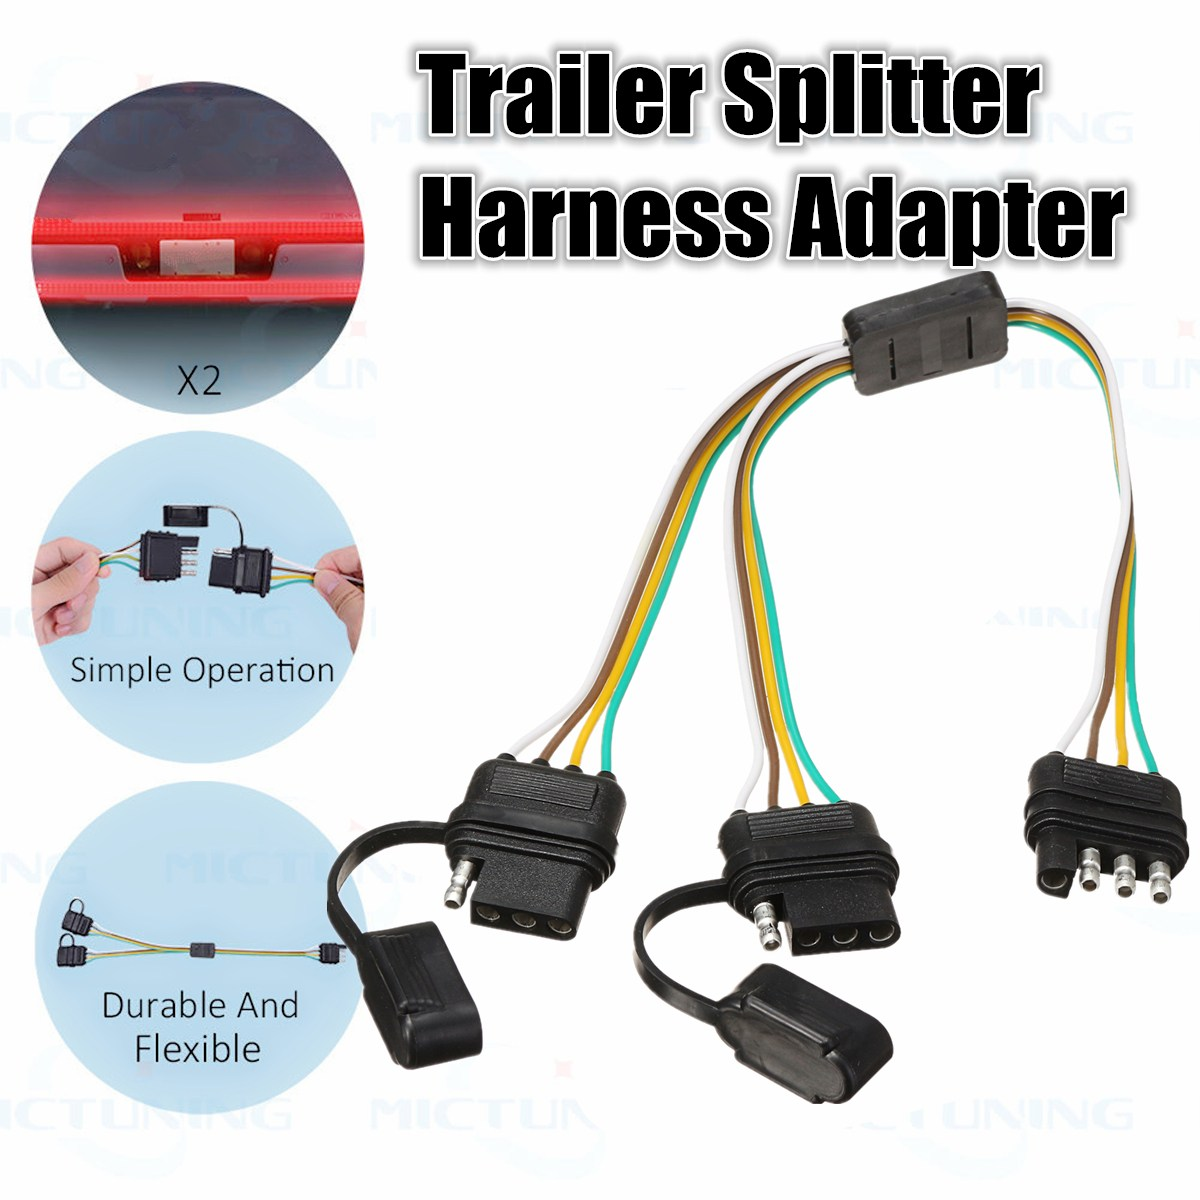 KROAK 2 Way 4 Pin Trailer Splitter Y Split Wiring Harness Adapter for LED  Tailgate Bar-in Cables, Adapters & Sockets from Automobiles & Motorcycles  on ...